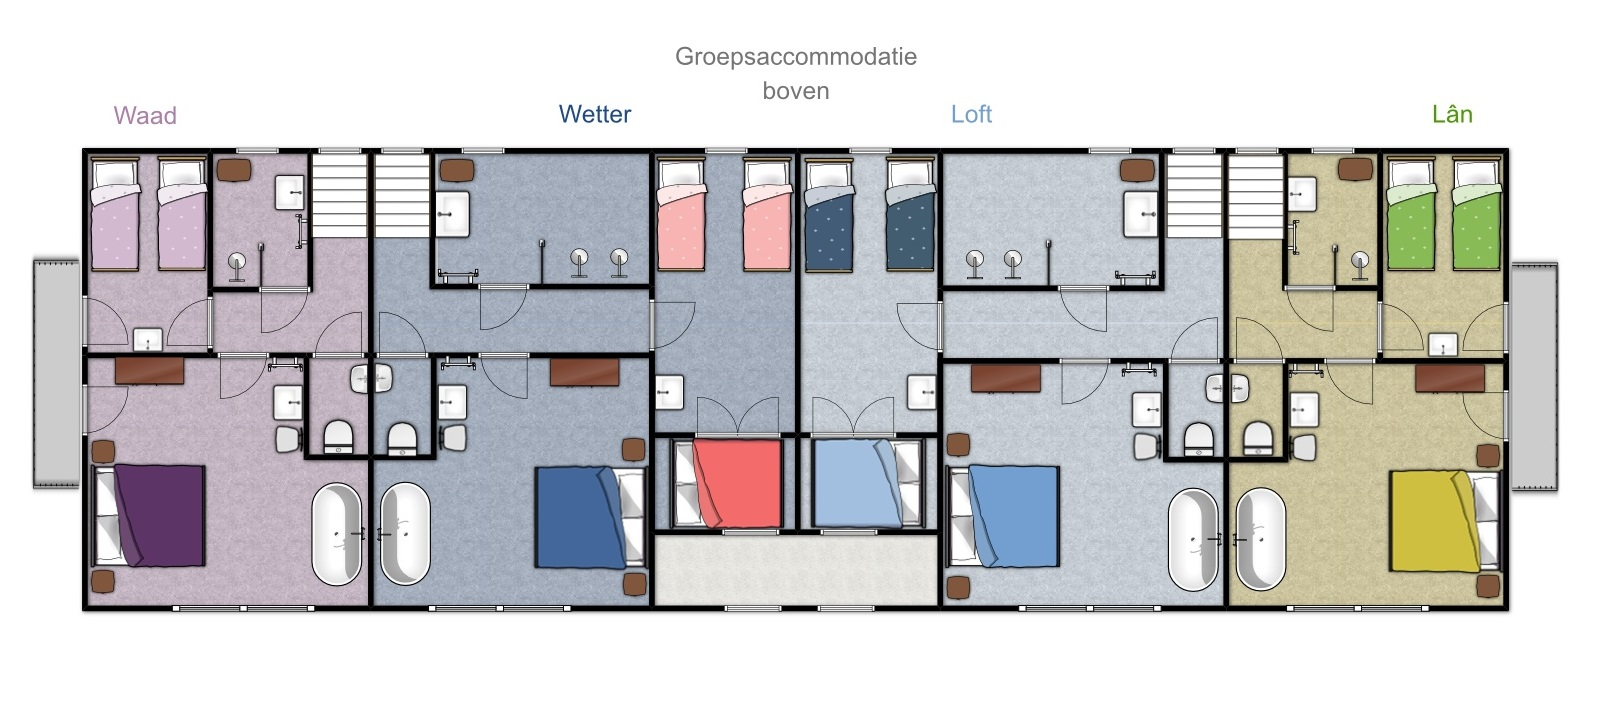 Groundplan Design Groupaccommodation Friesland Netherlands